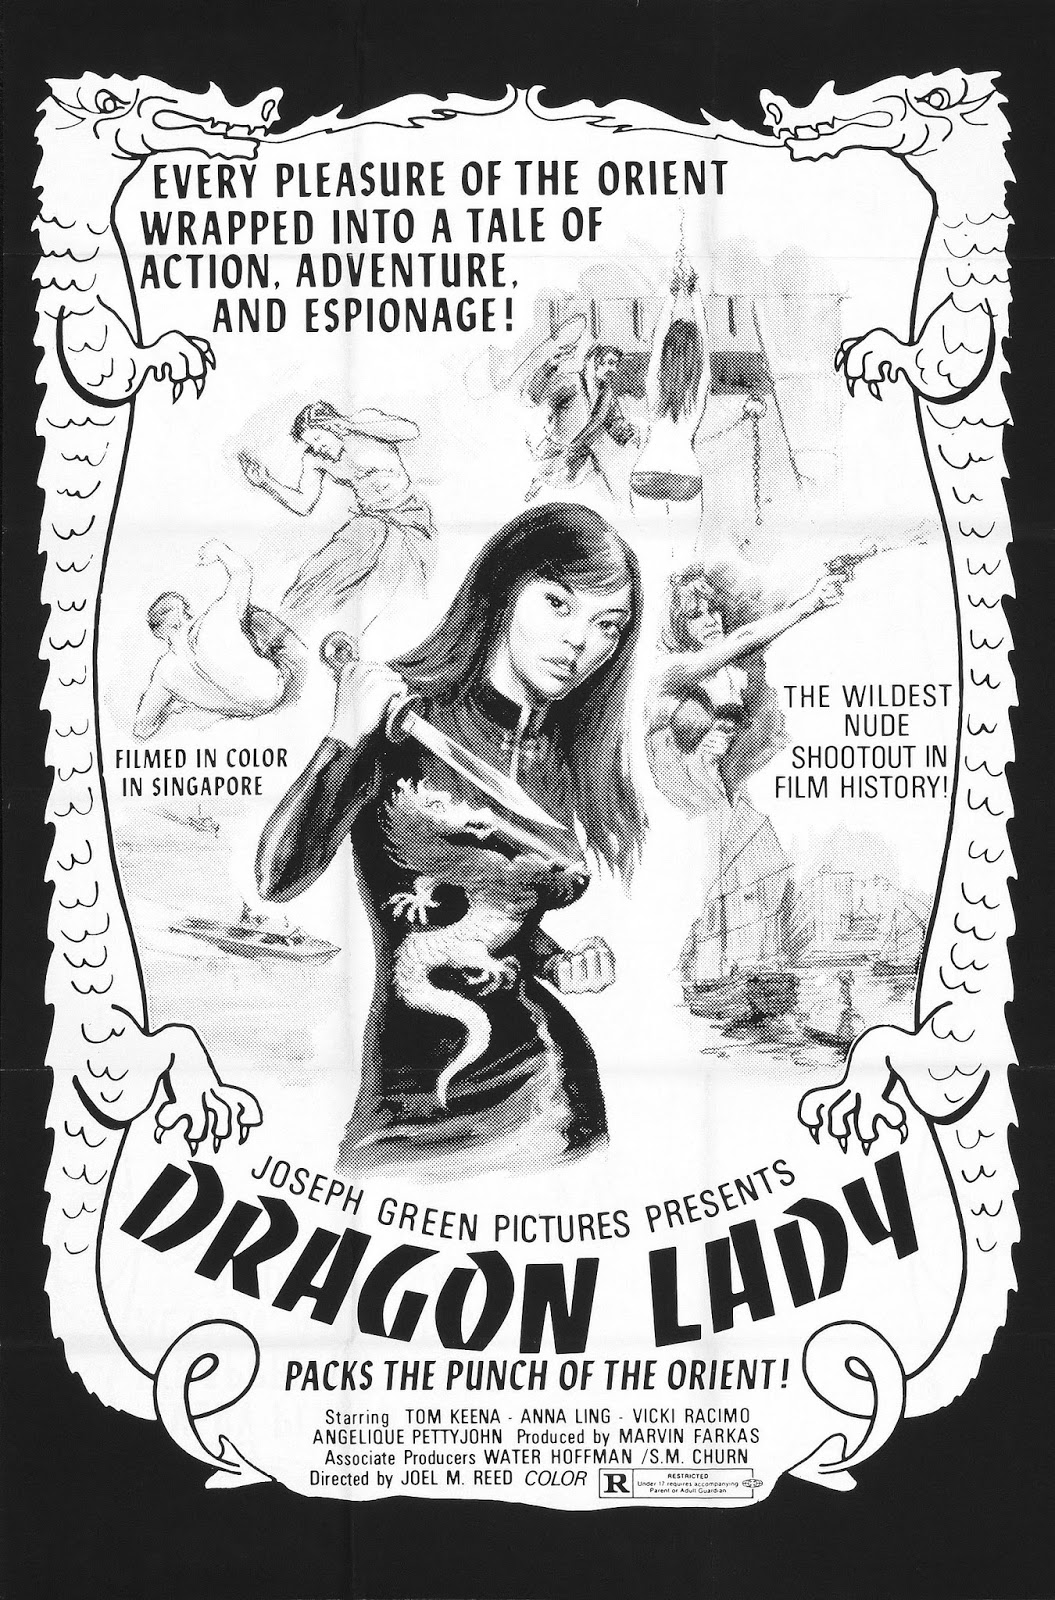 dragon_lady_poster_01.jpg